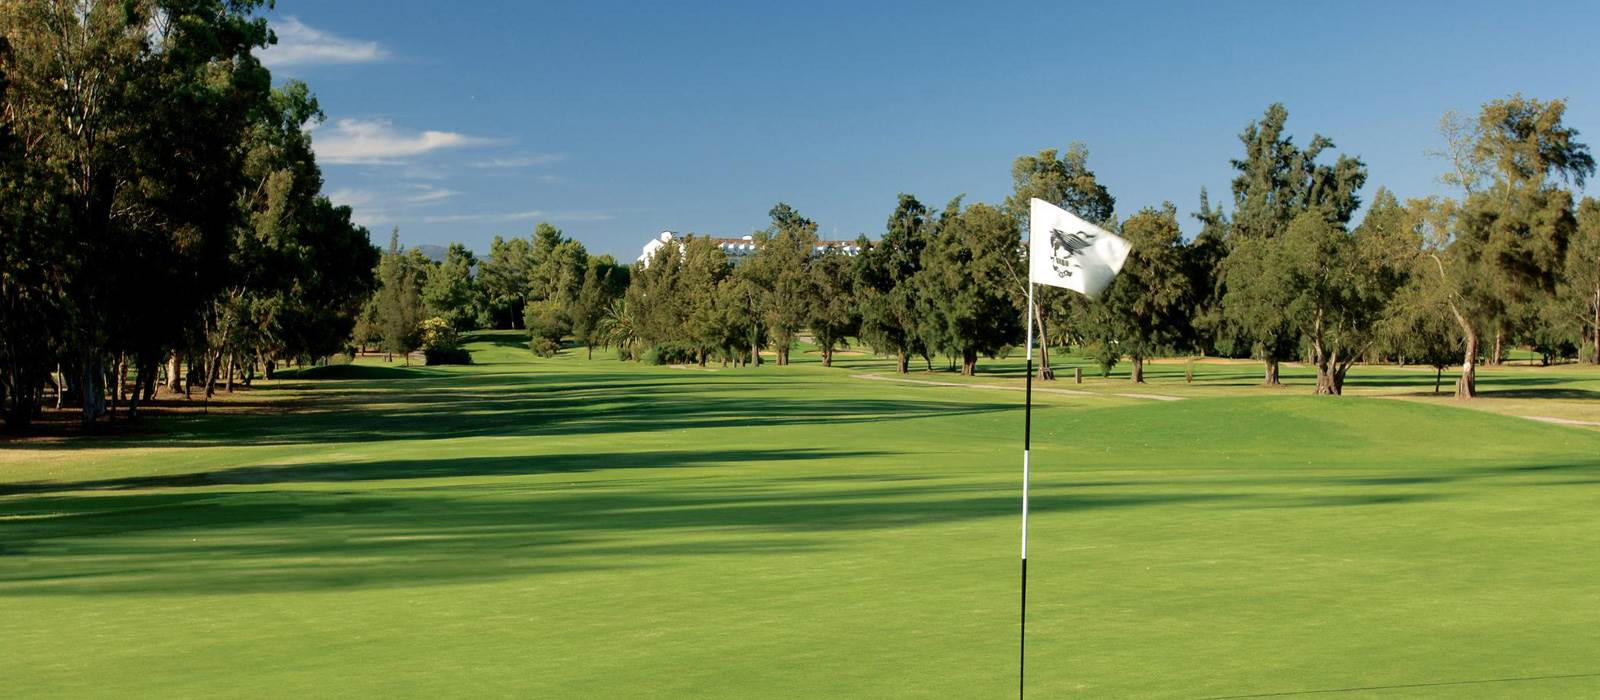 Overview of golf course named Penina Hotel and Golf Resort - Academy Course